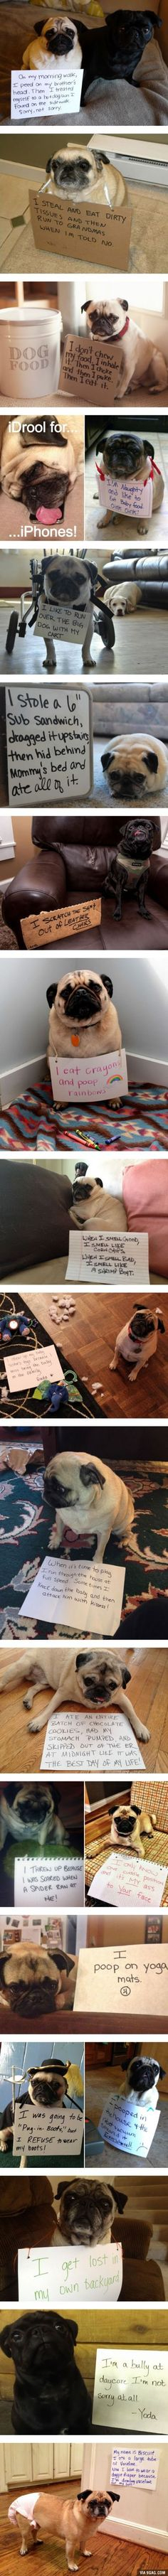 """Pug Shaming... Some of these are hilarious... The """"I only know one position"""" thing must be a pug trait.:"""